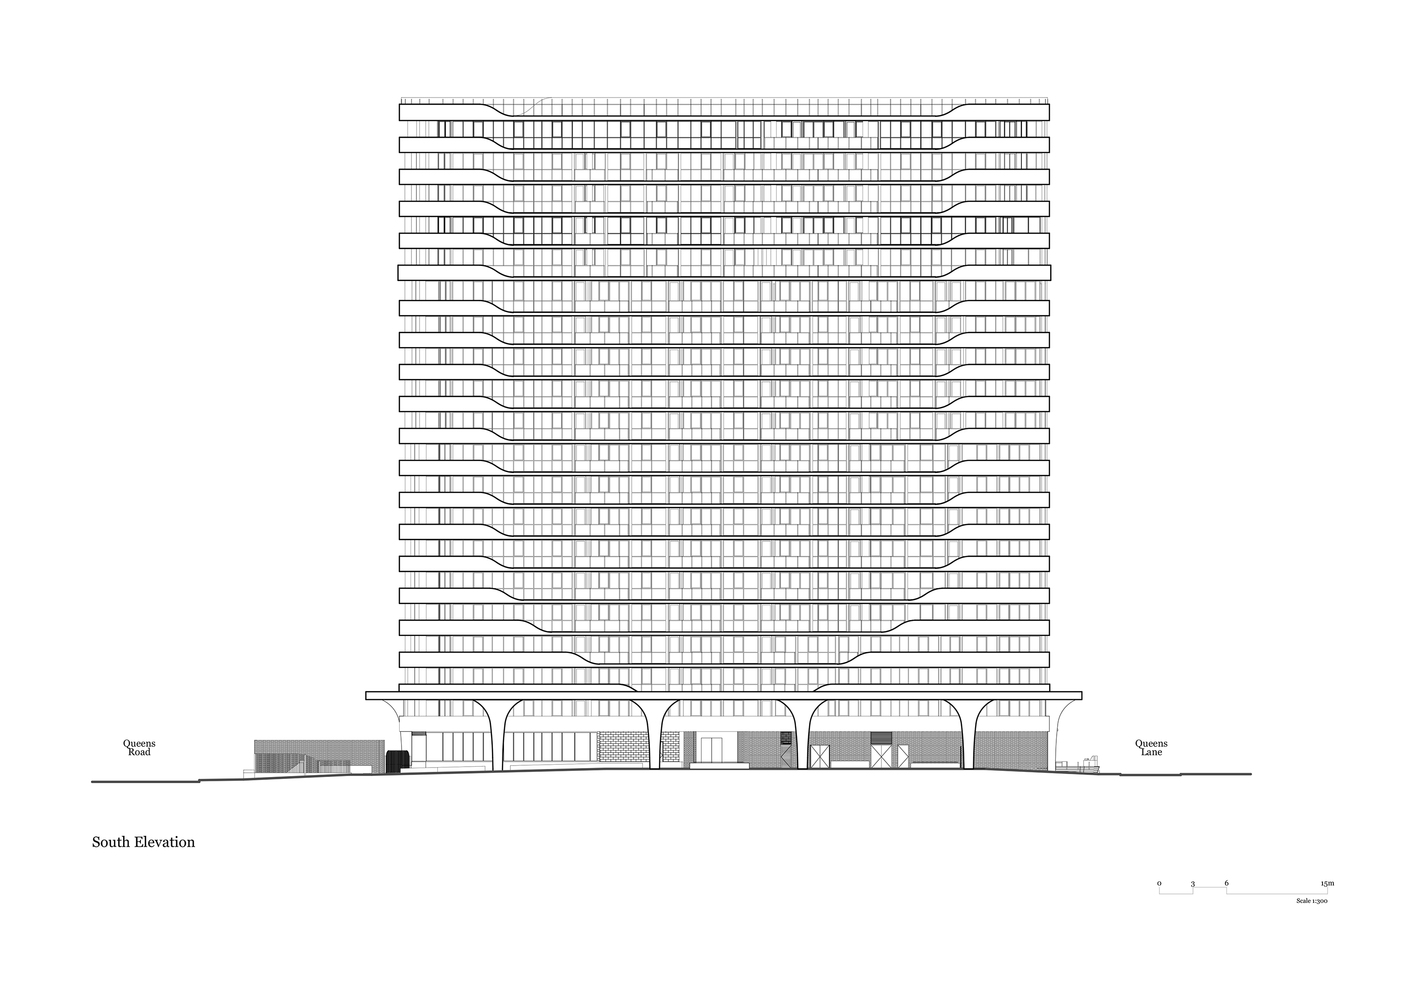 South_Elevation_-_Queens_Domain_-_DKO_Architecture.jpg